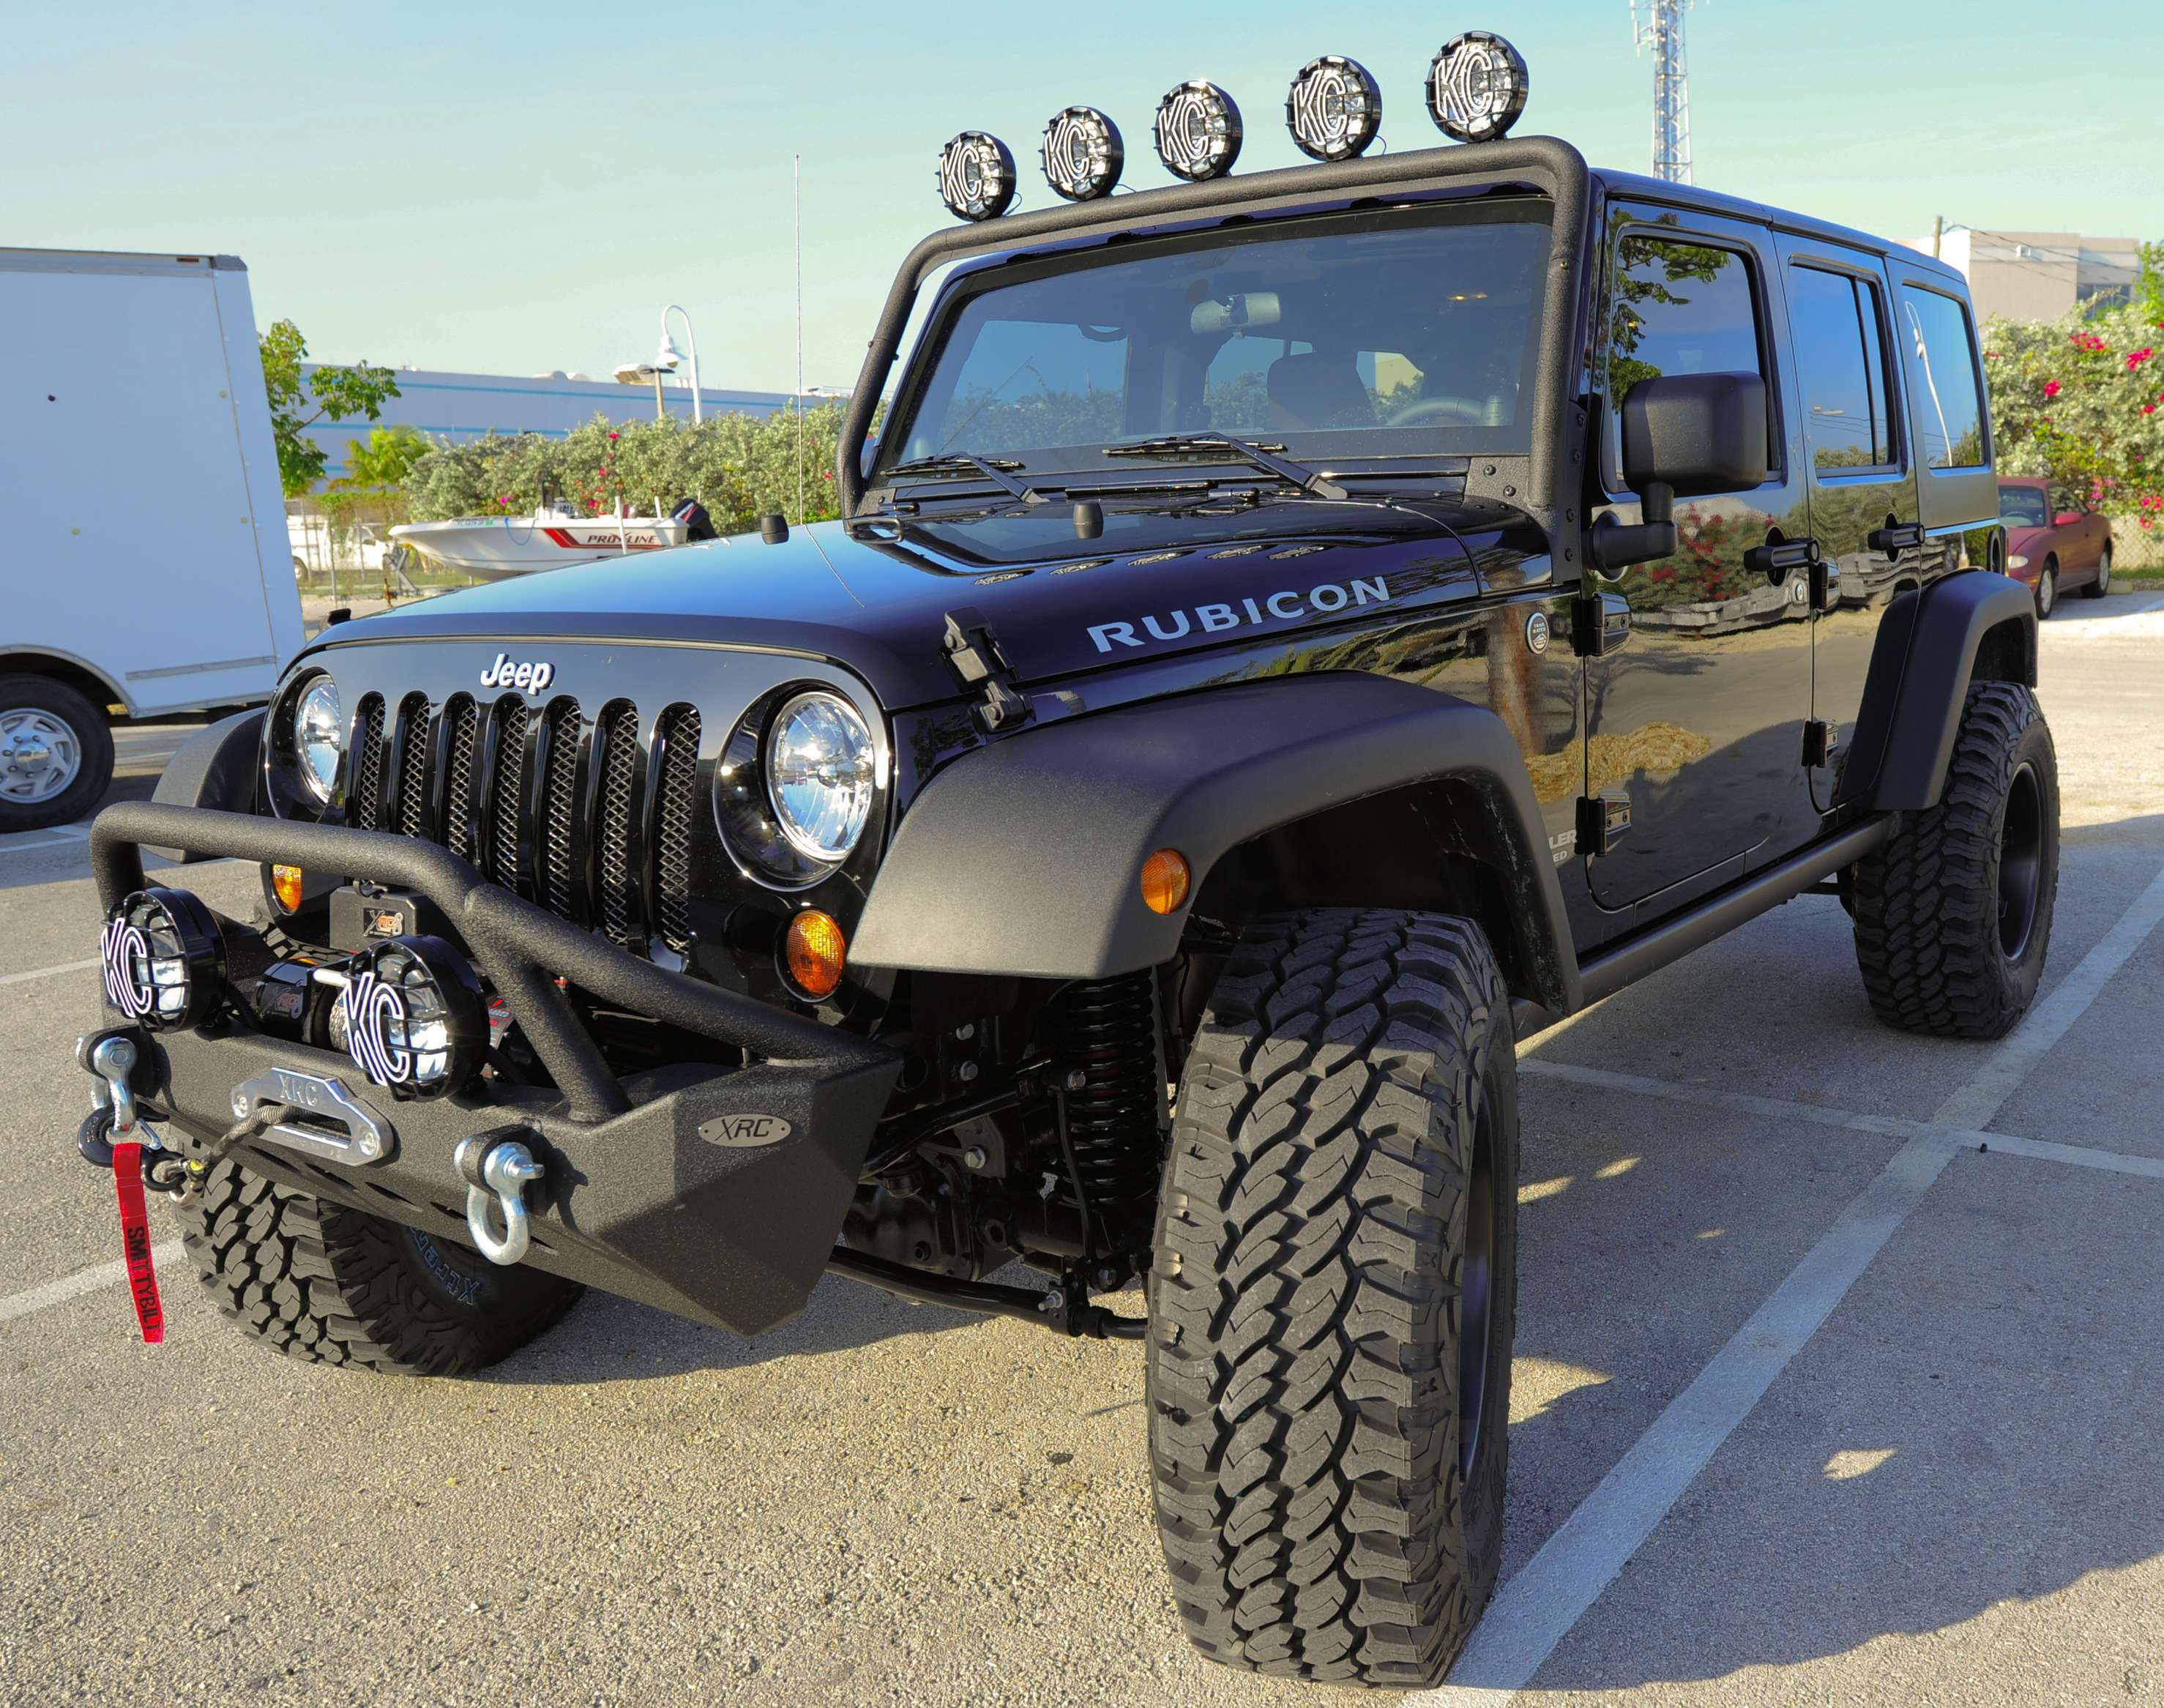 Jeep Rubicon #8200862